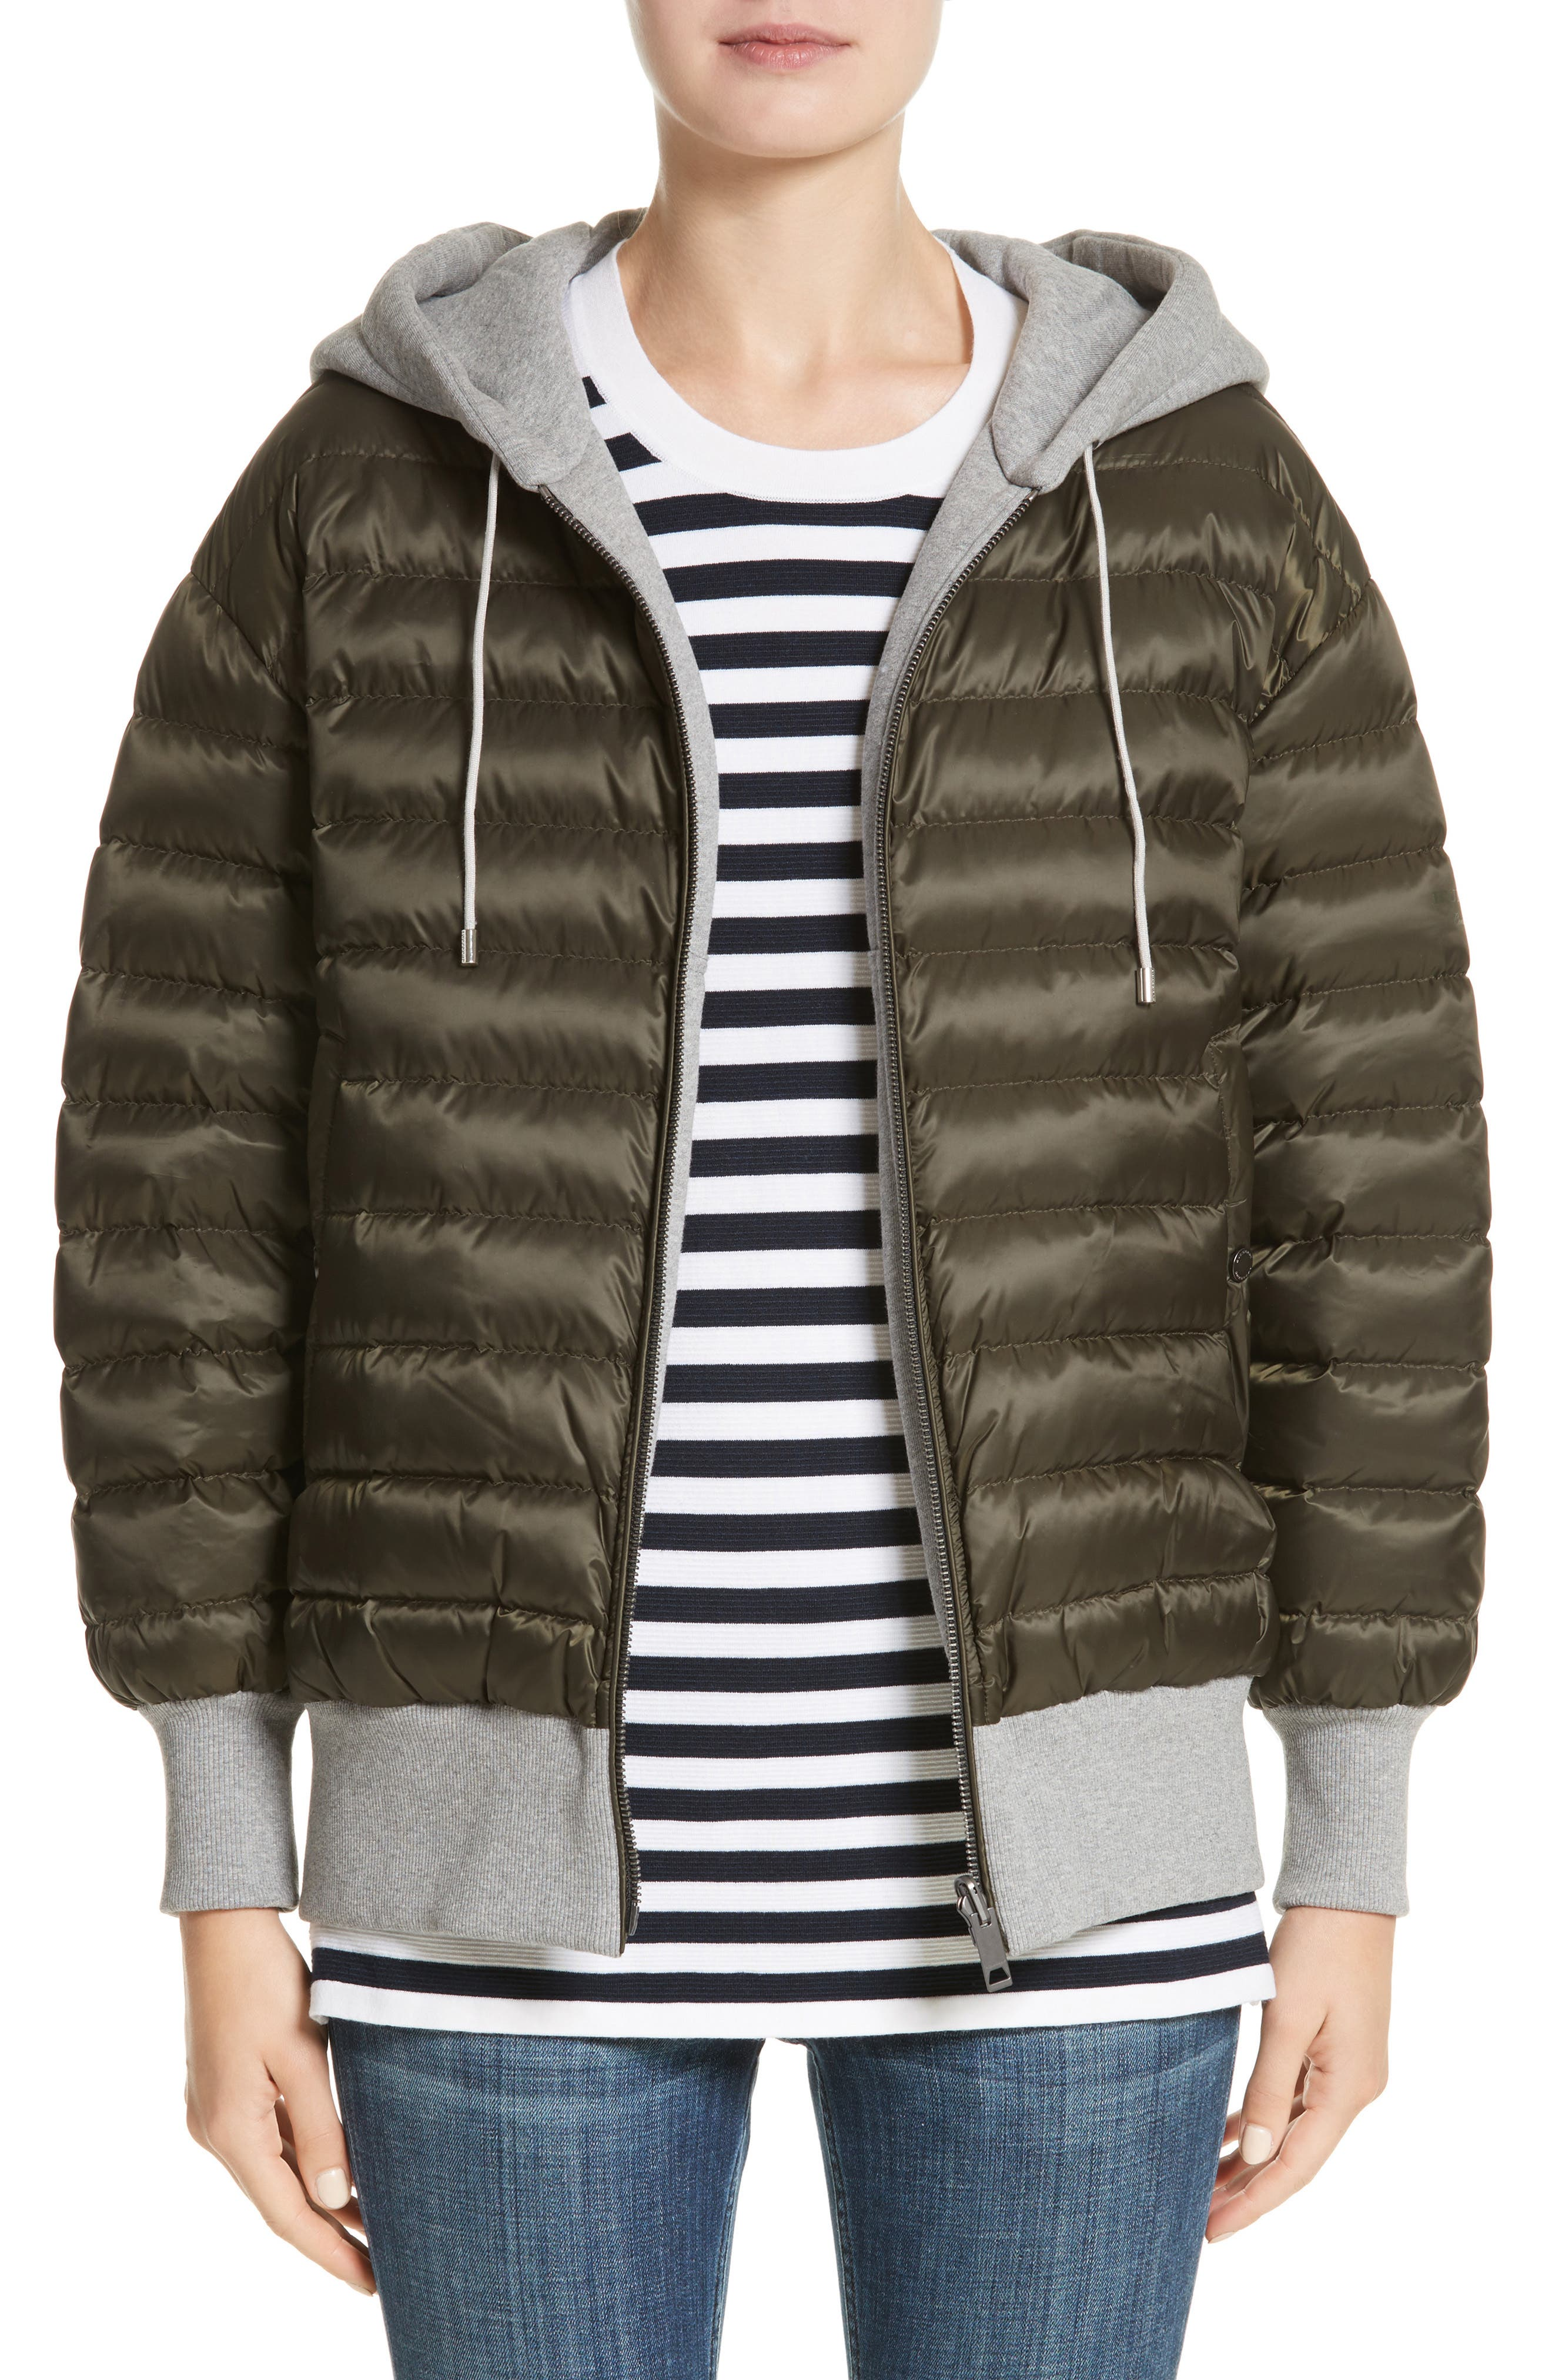 Langleigh Reversible Down Hooded Bomber Jacket,                         Main,                         color, Olive